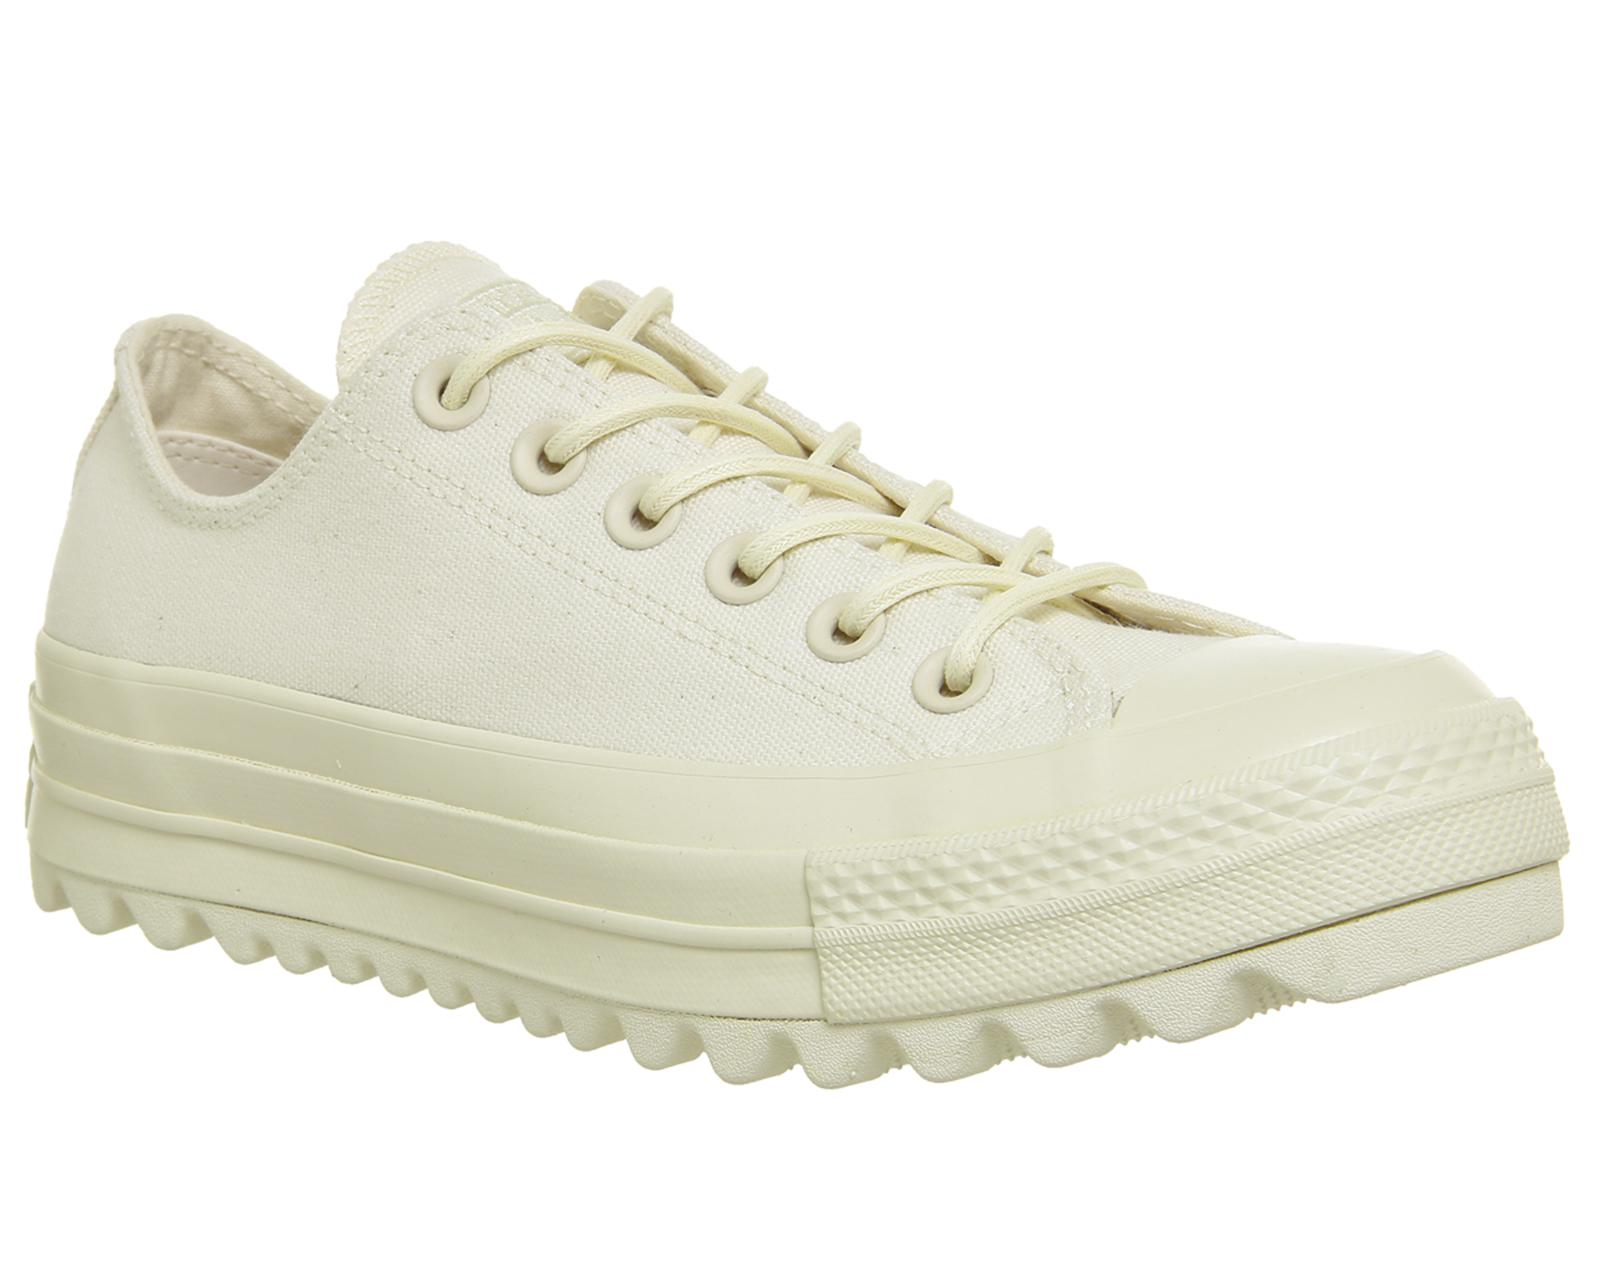 Chuck Taylor All Star Lift Ripple Ox Trainers In White - White Converse fzSm4cQ